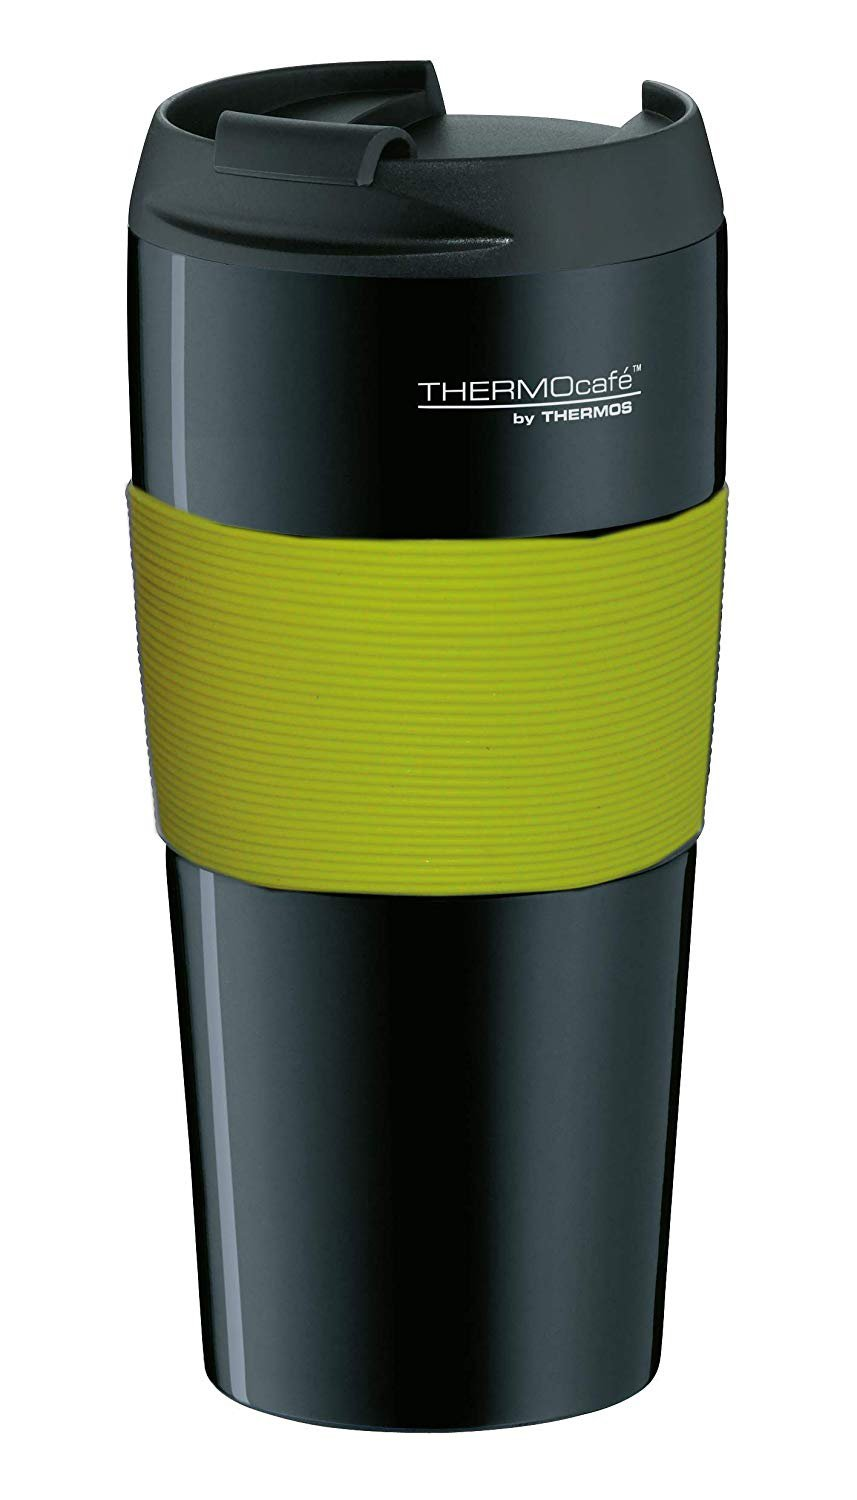 Thermos Tumbler 'Pro' 0.4L Black- Lime with collar